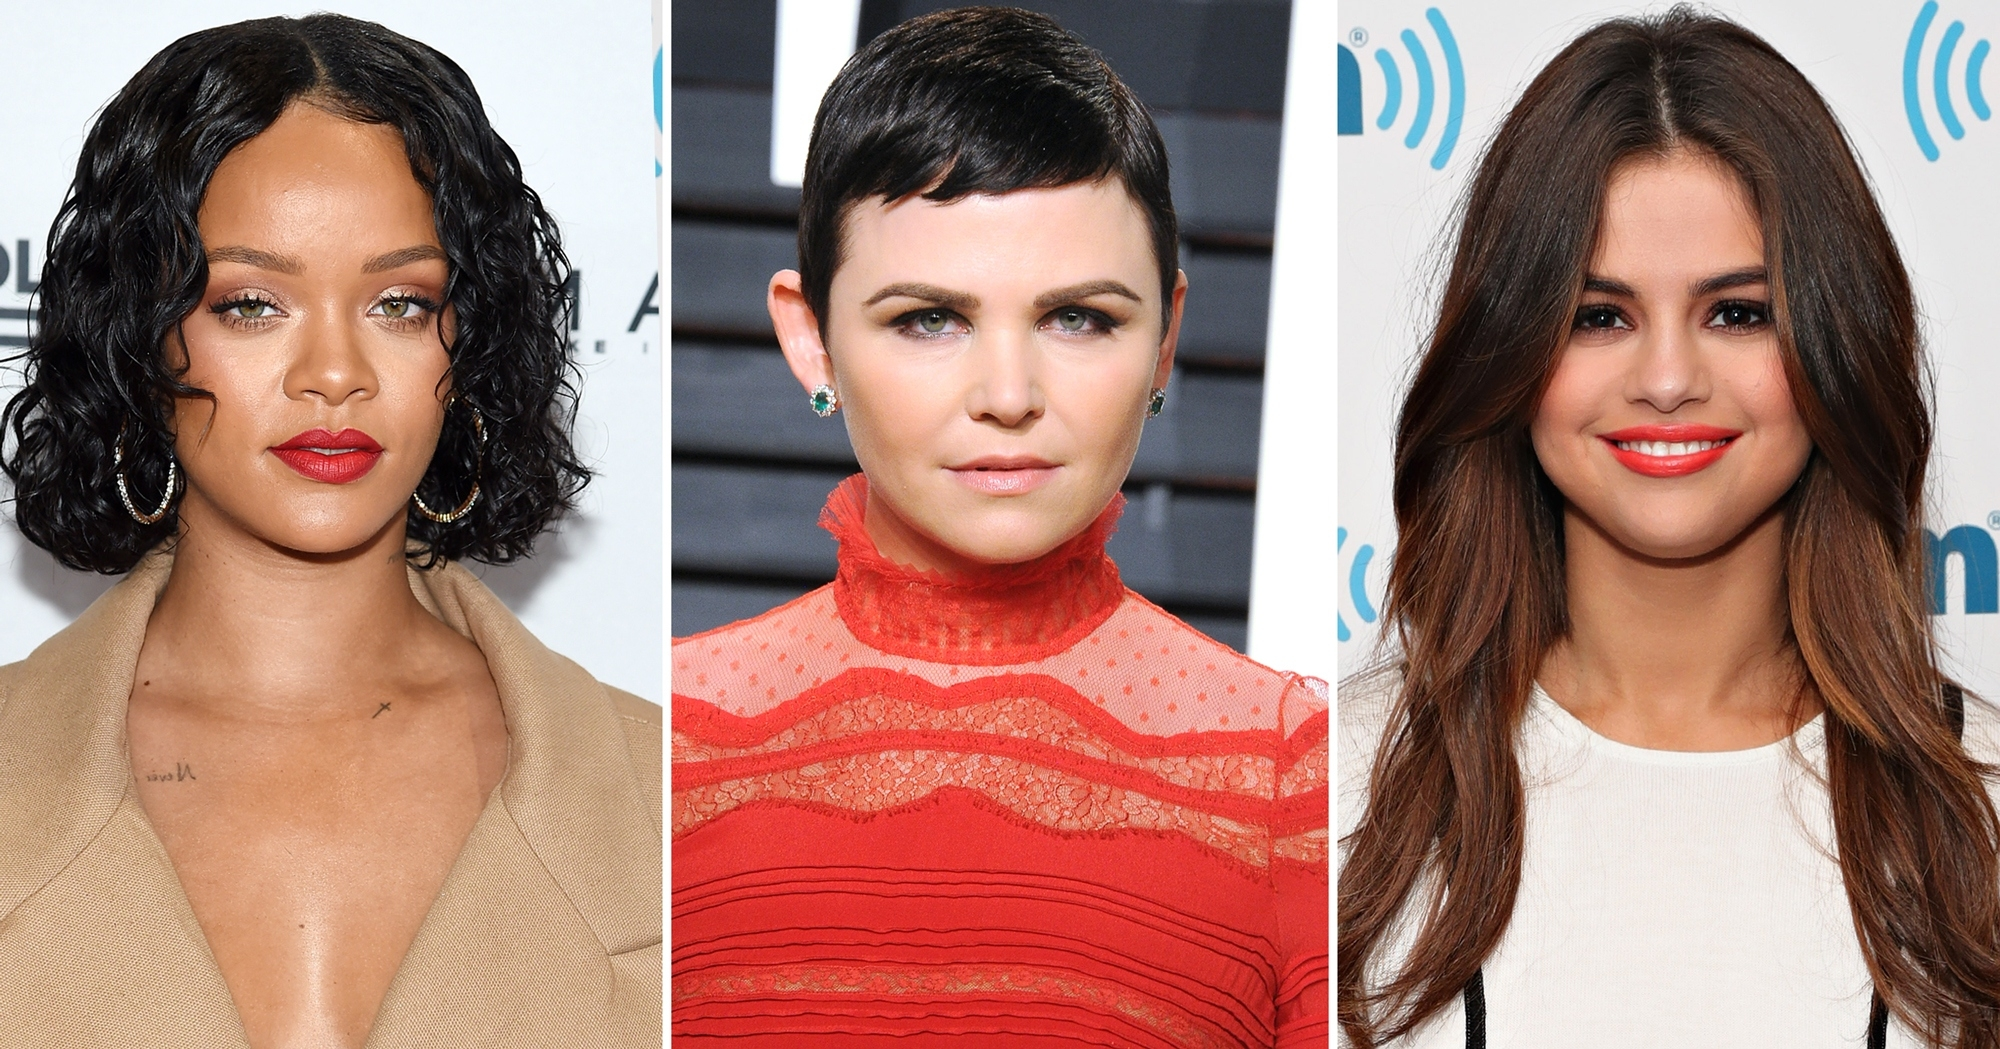 Find The Perfect Cut For Your Face Shape | Instyle regarding Try Different Hairstyles On My Face